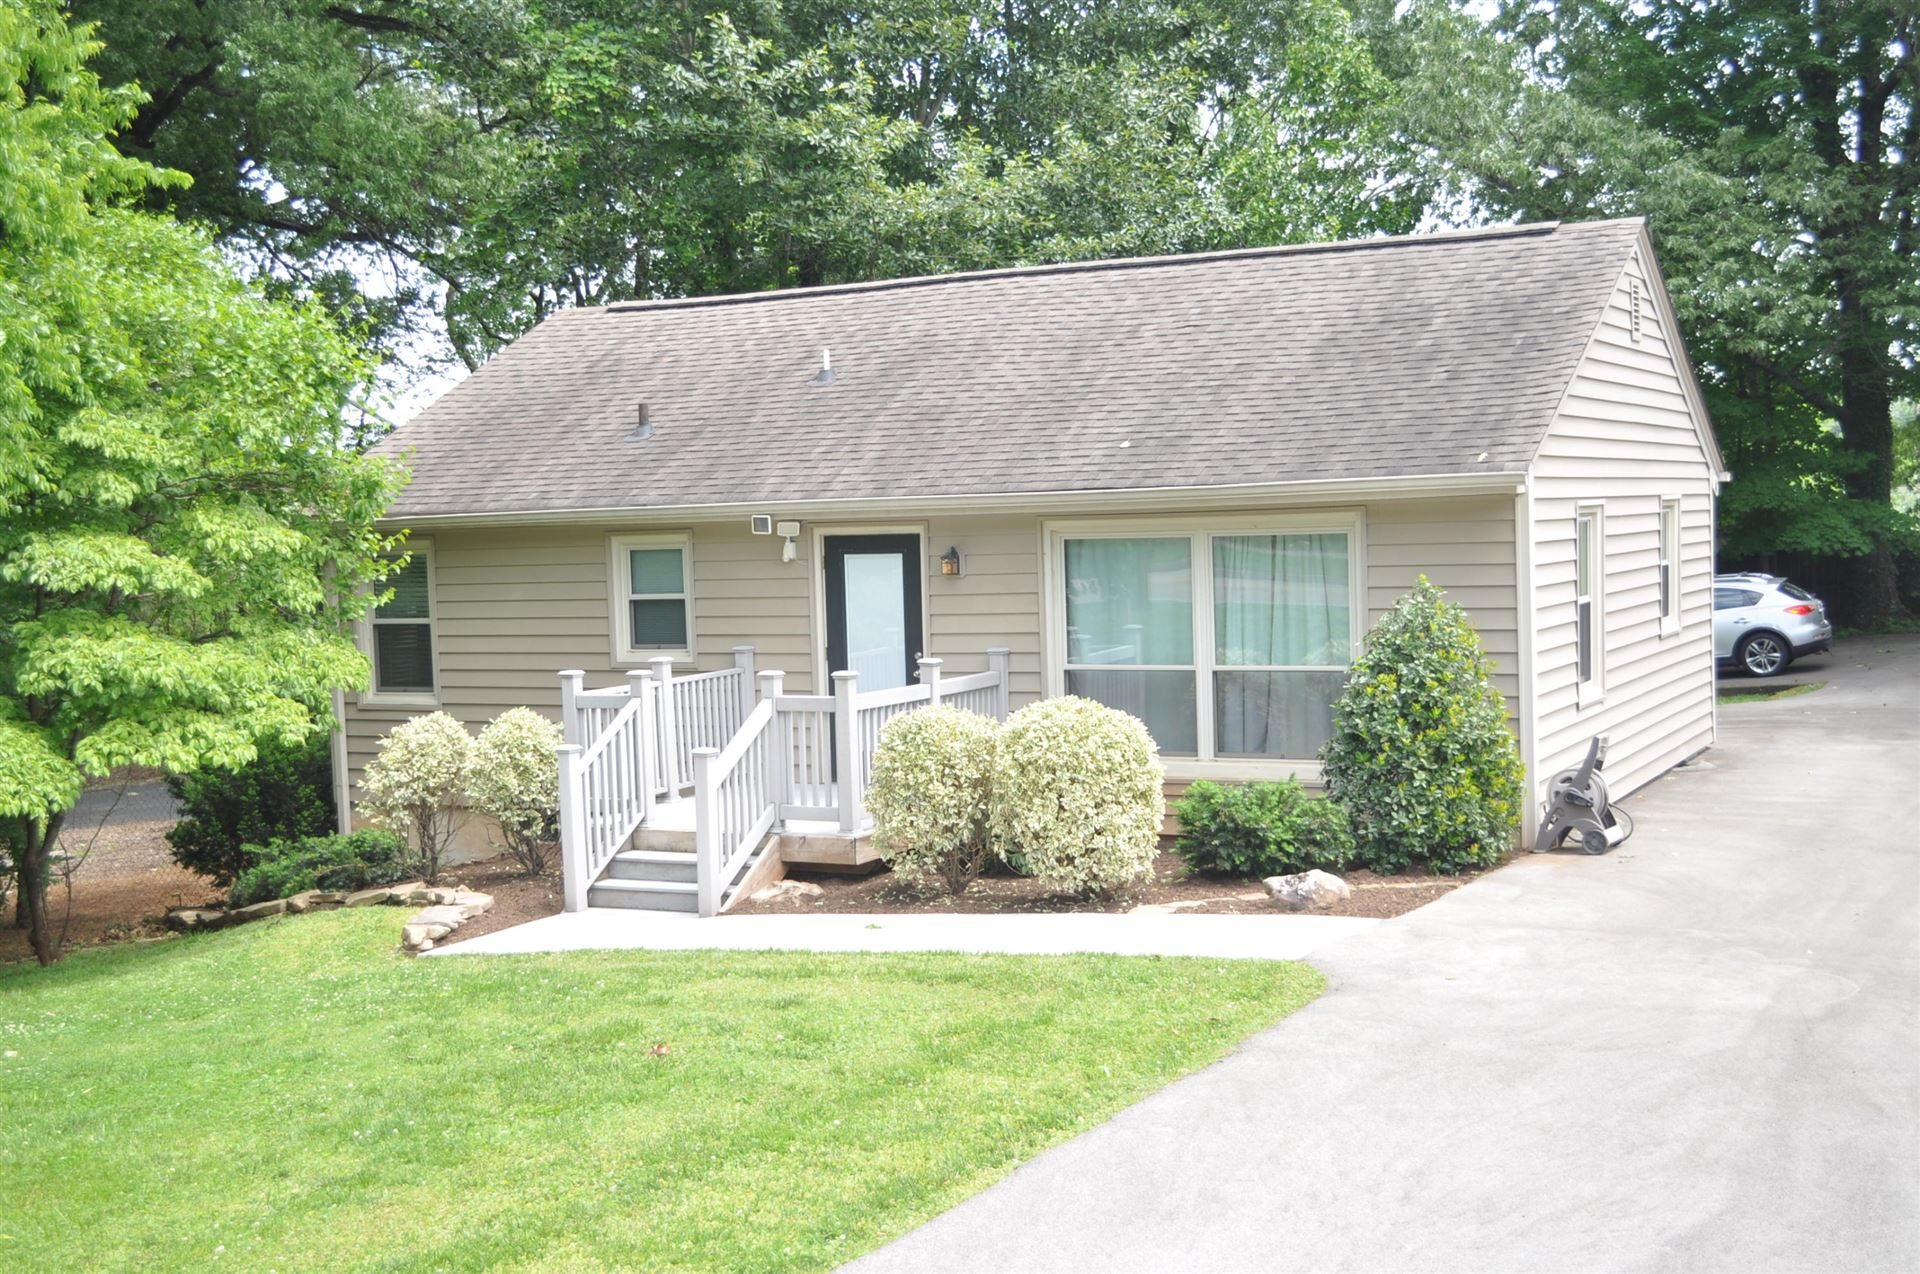 4008 Sutherland Ave, Knoxville, TN 37919 - MLS#: 1152958